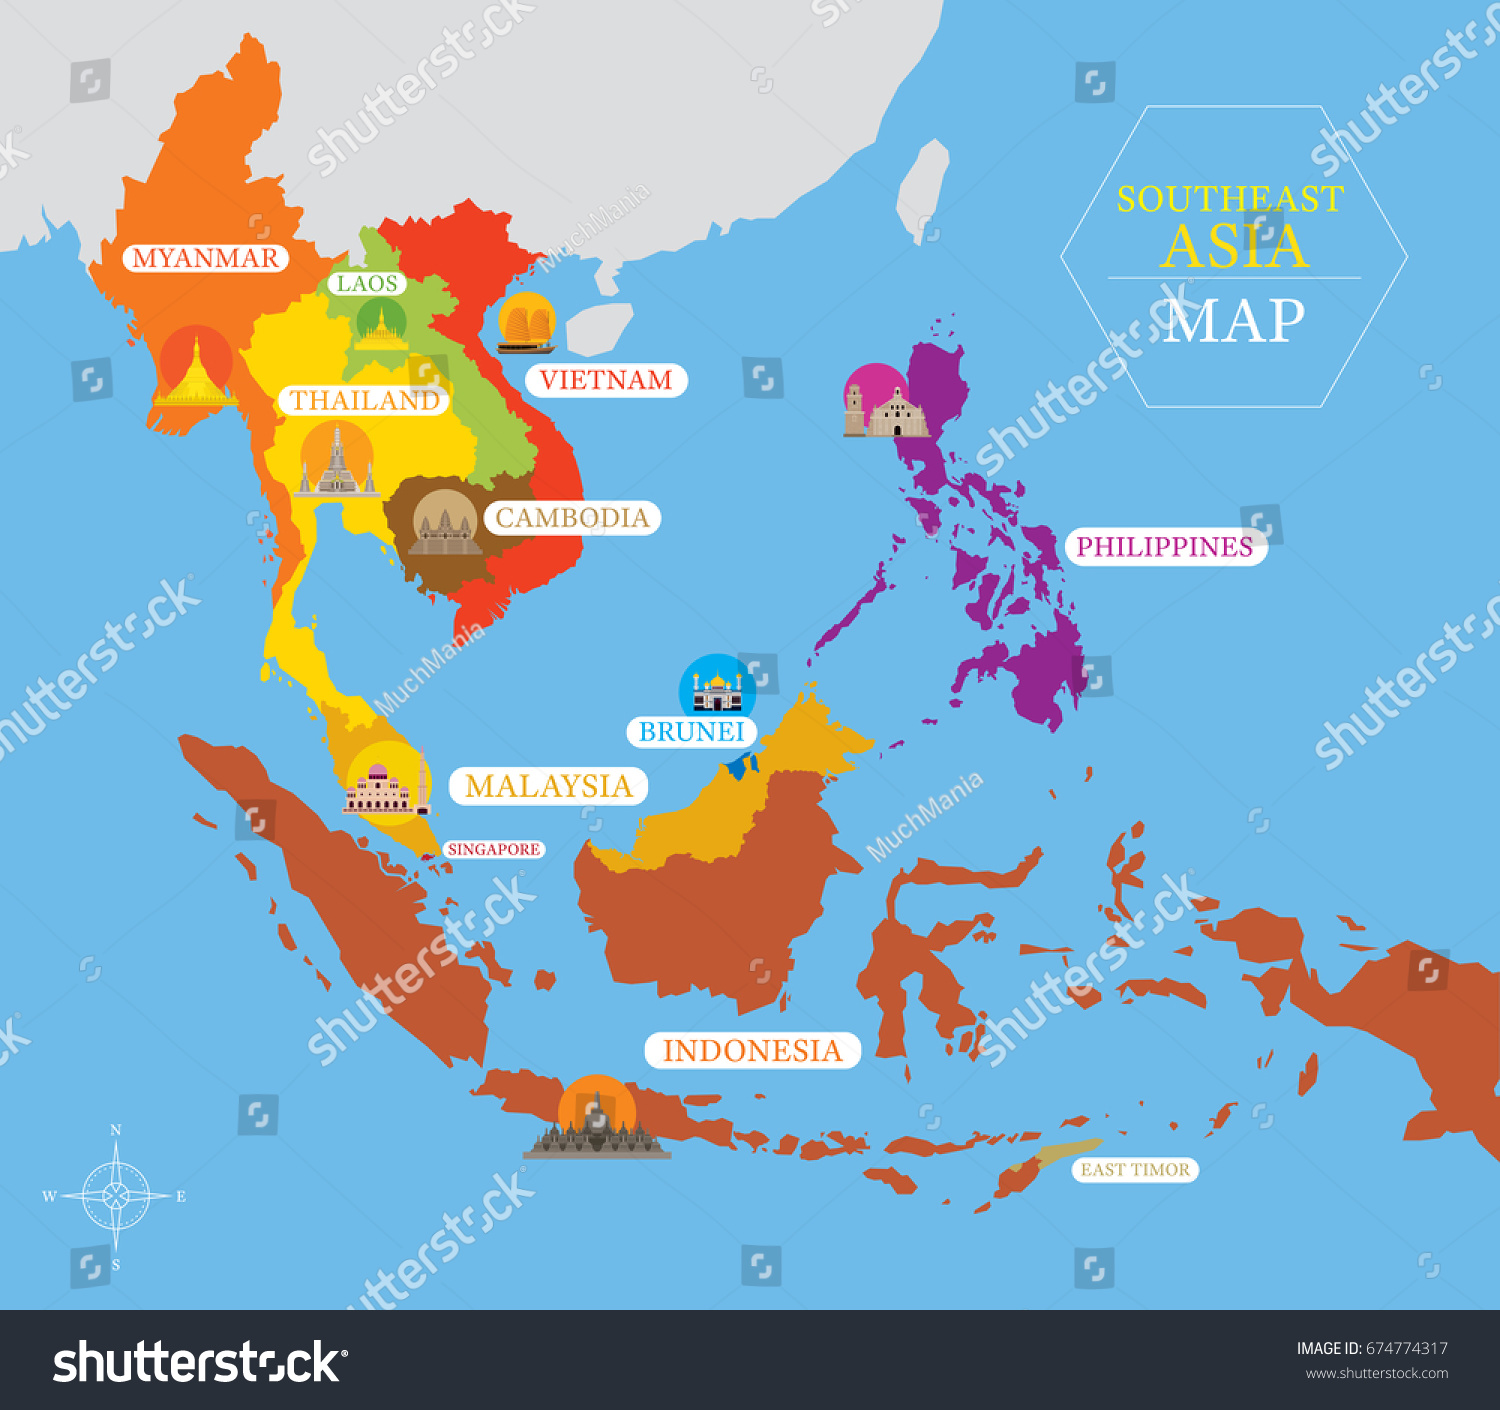 southeast asia map country icons location stock vector   - southeast asia map with country icons and location landmarks travel and touristattraction